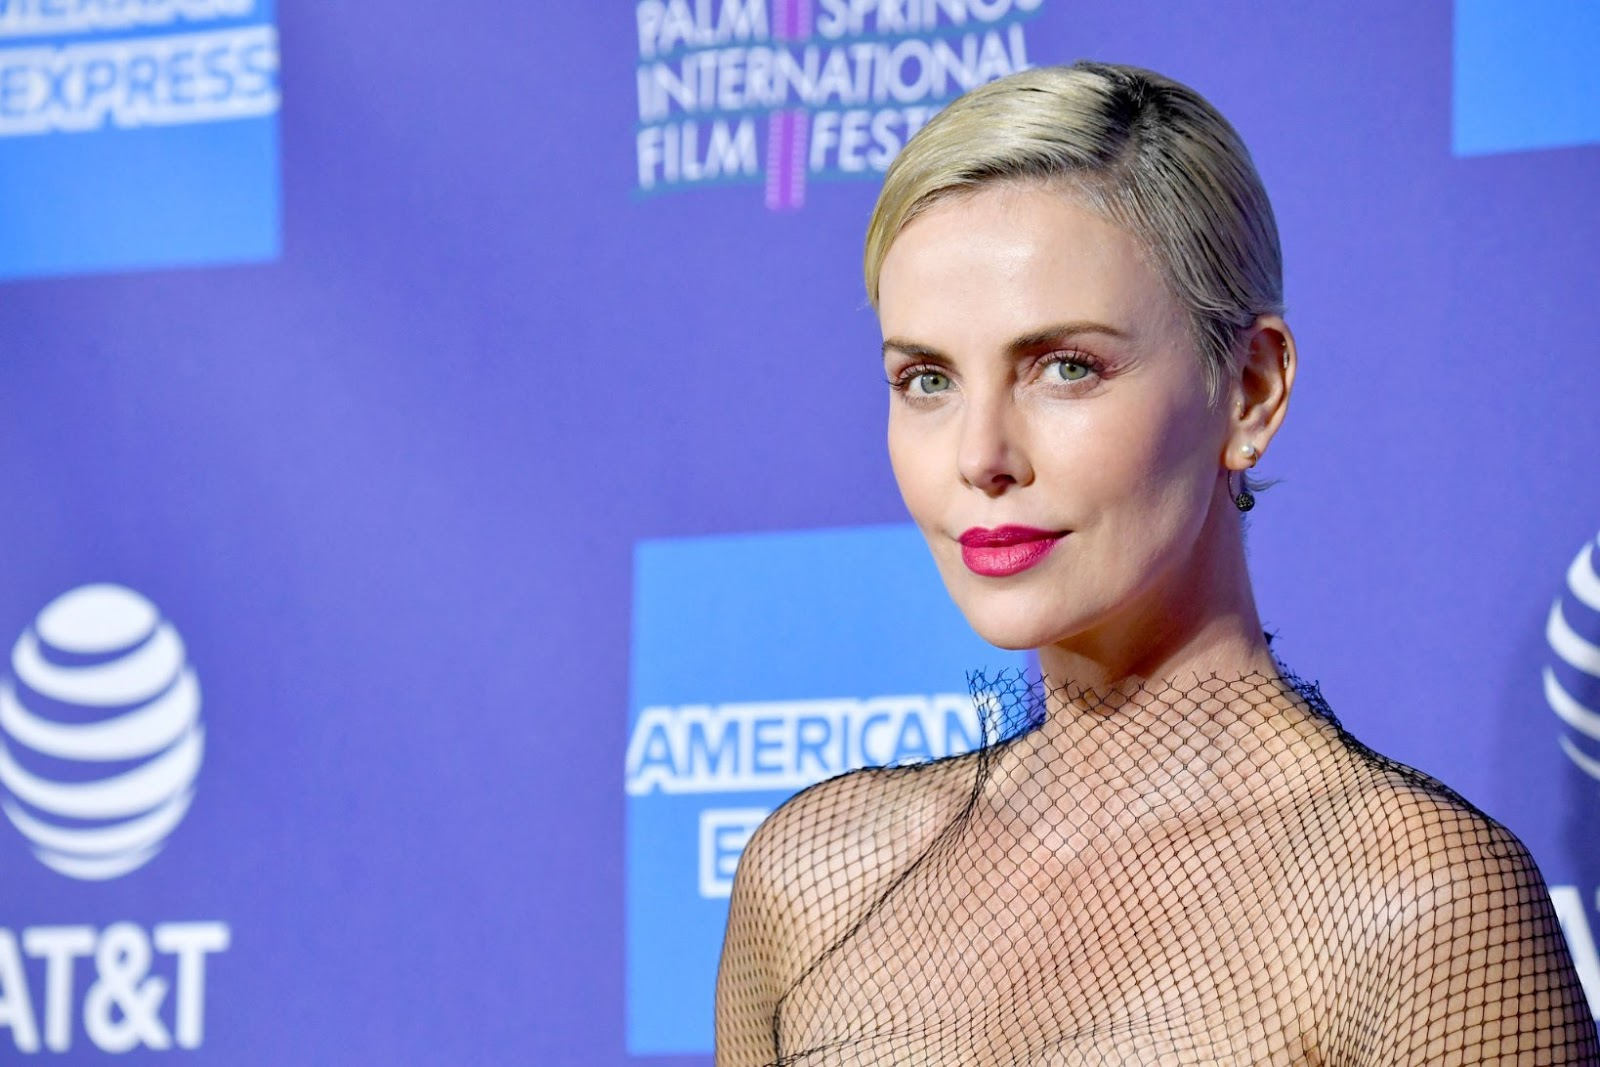 Charlize Theron wears tweed fishnet frock to accept award at Palm Springs Festival